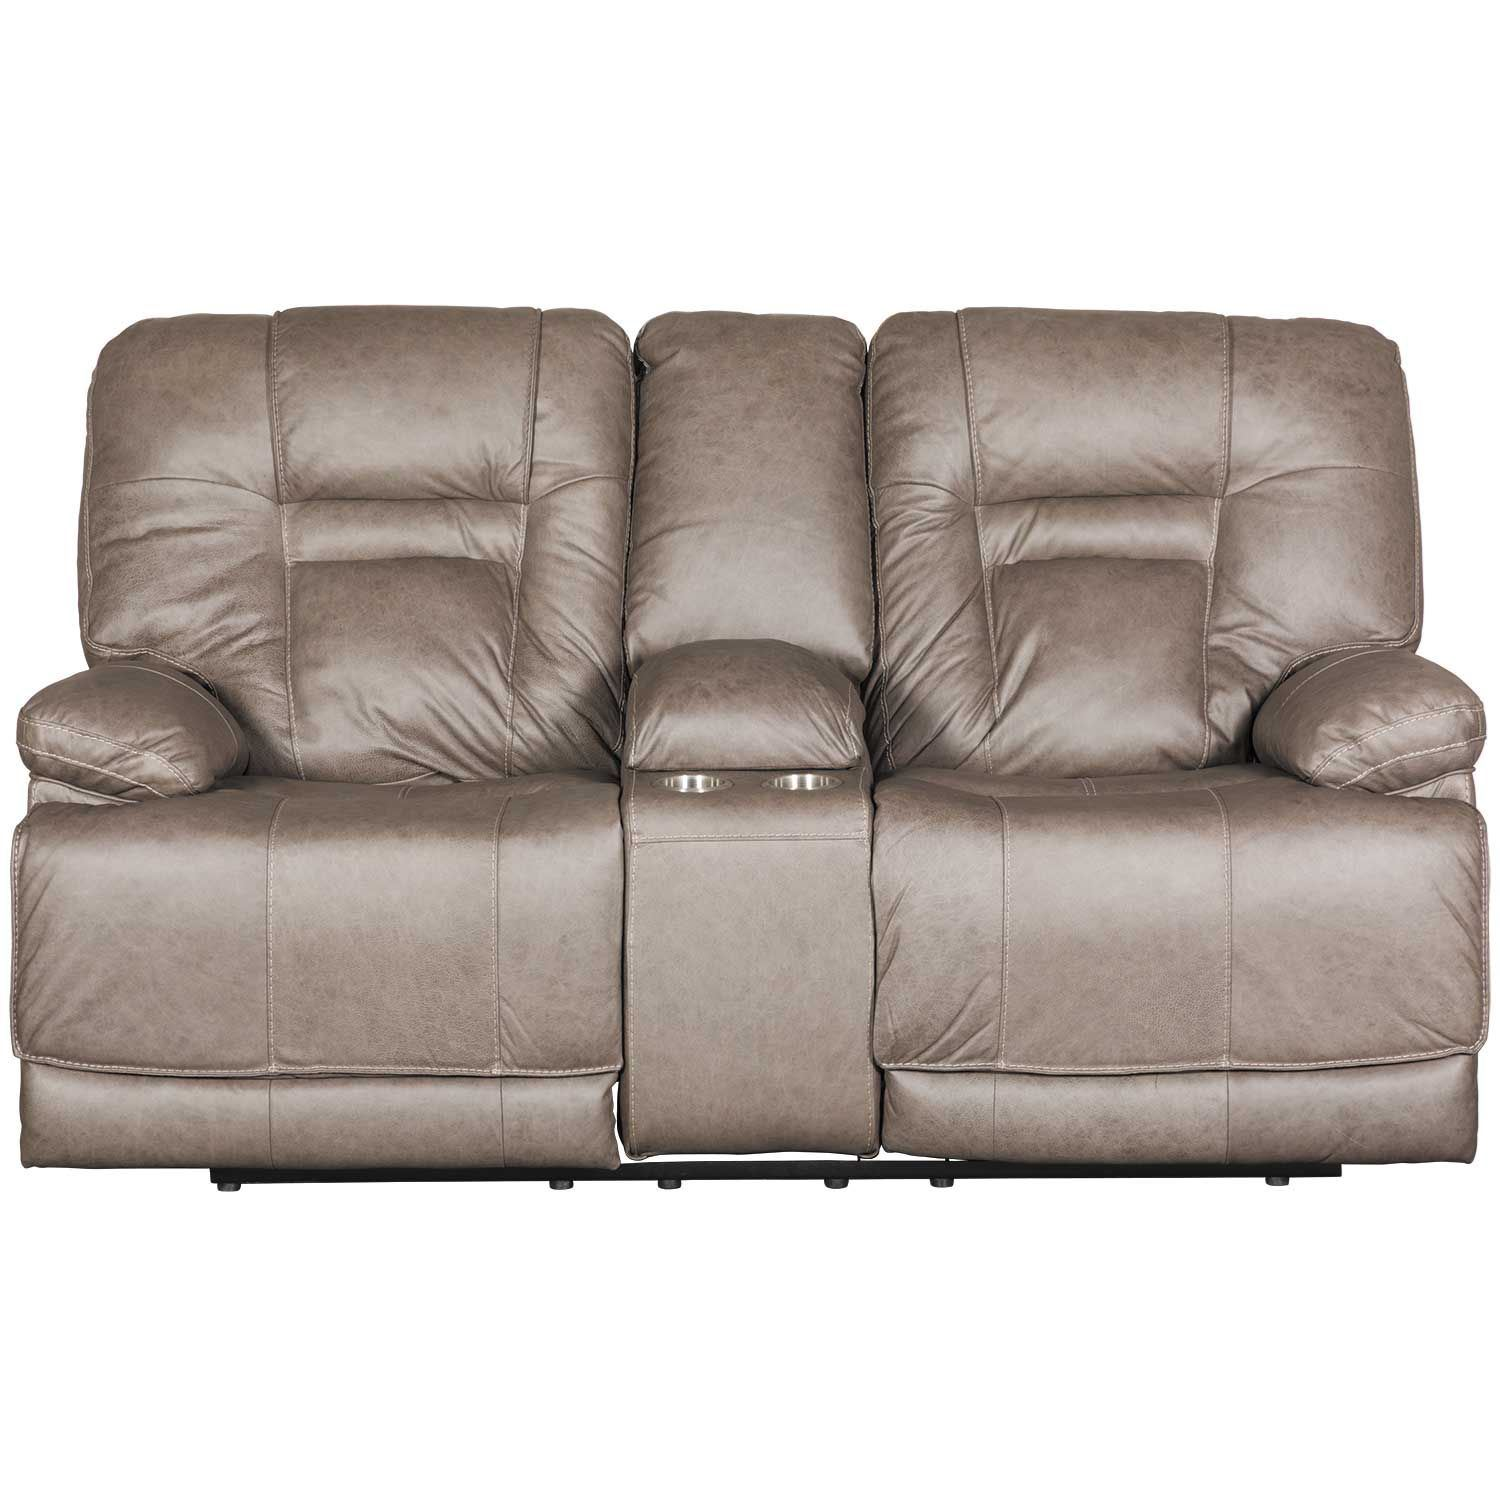 Wurstrow Smoke Italian Leather Power Reclining Loveseat